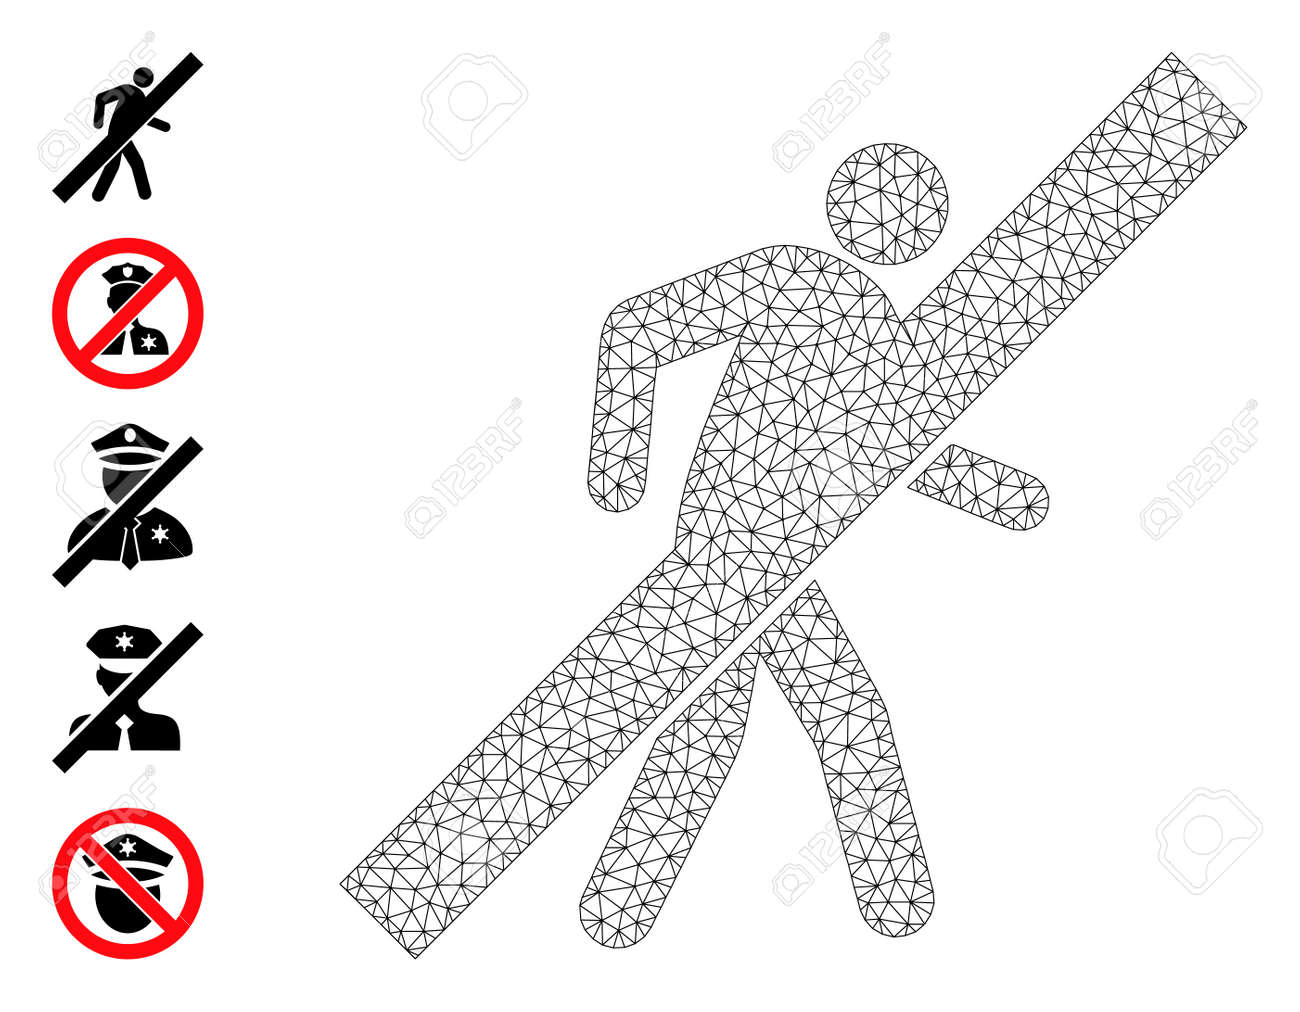 Mesh polygonal no walking man icon with simple carcass created from no walking man vector graphics. Carcass mesh polygonal no walking man. Linear carcass flat mesh in vector format. - 172393934